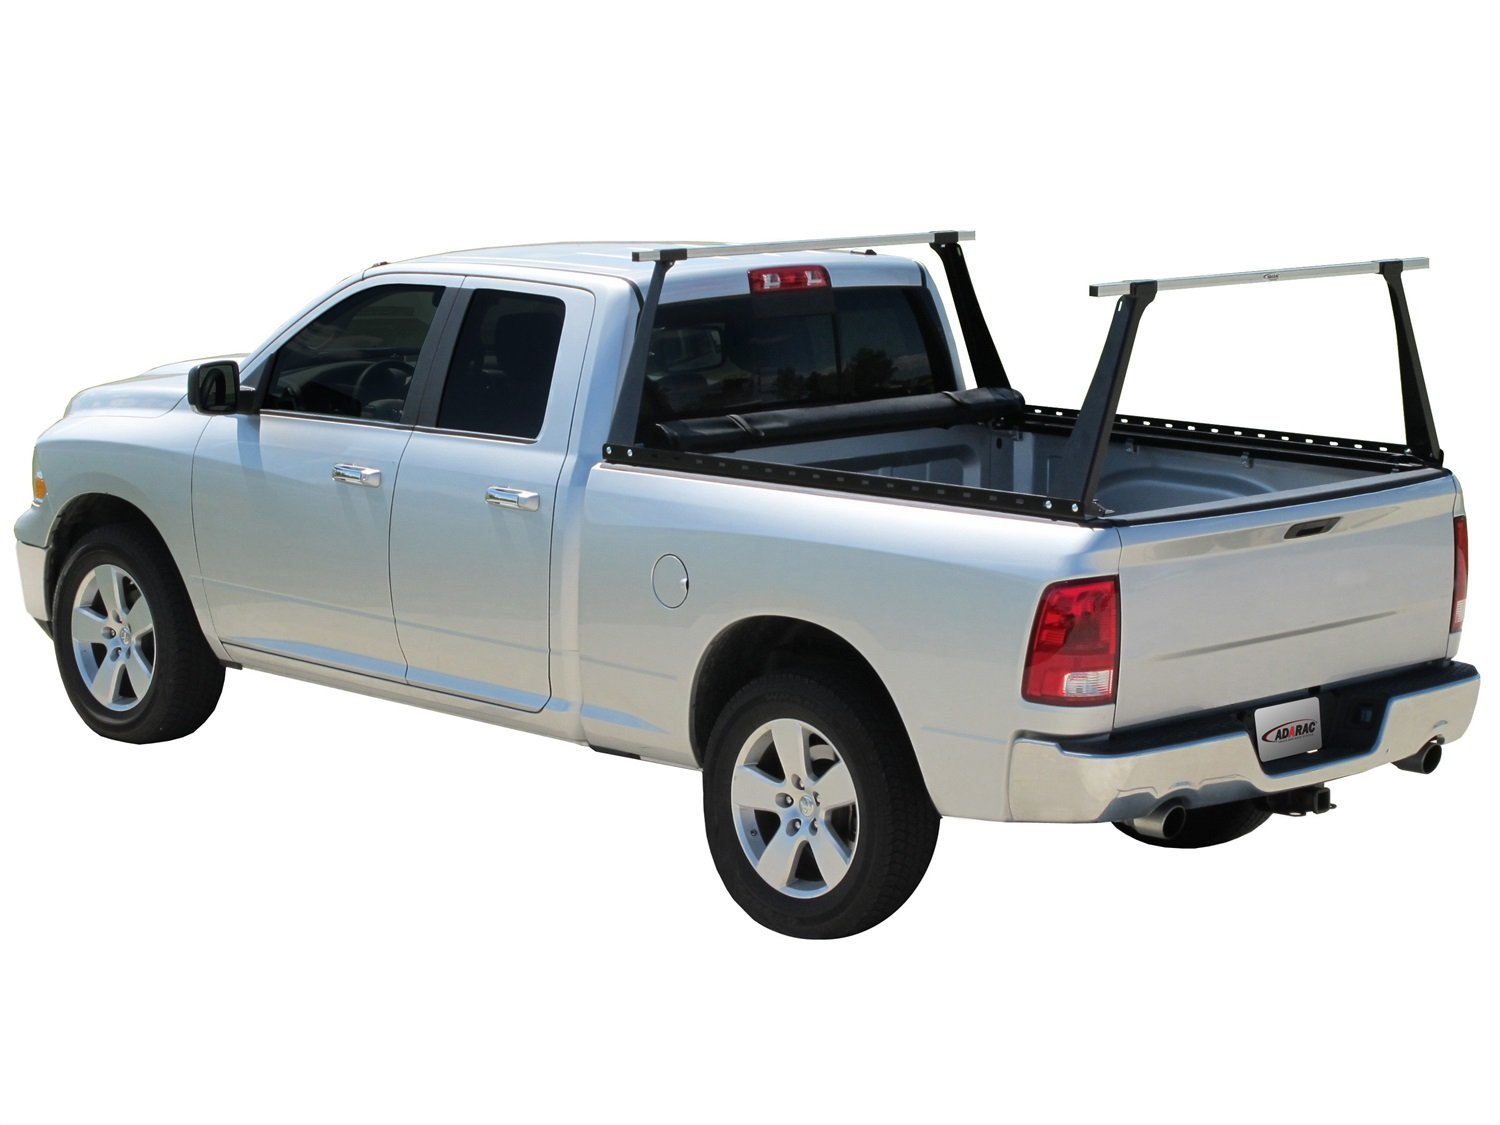 Access 70490 Adarac Truck Bed Rack for Ford F150 with 5.5' Bed